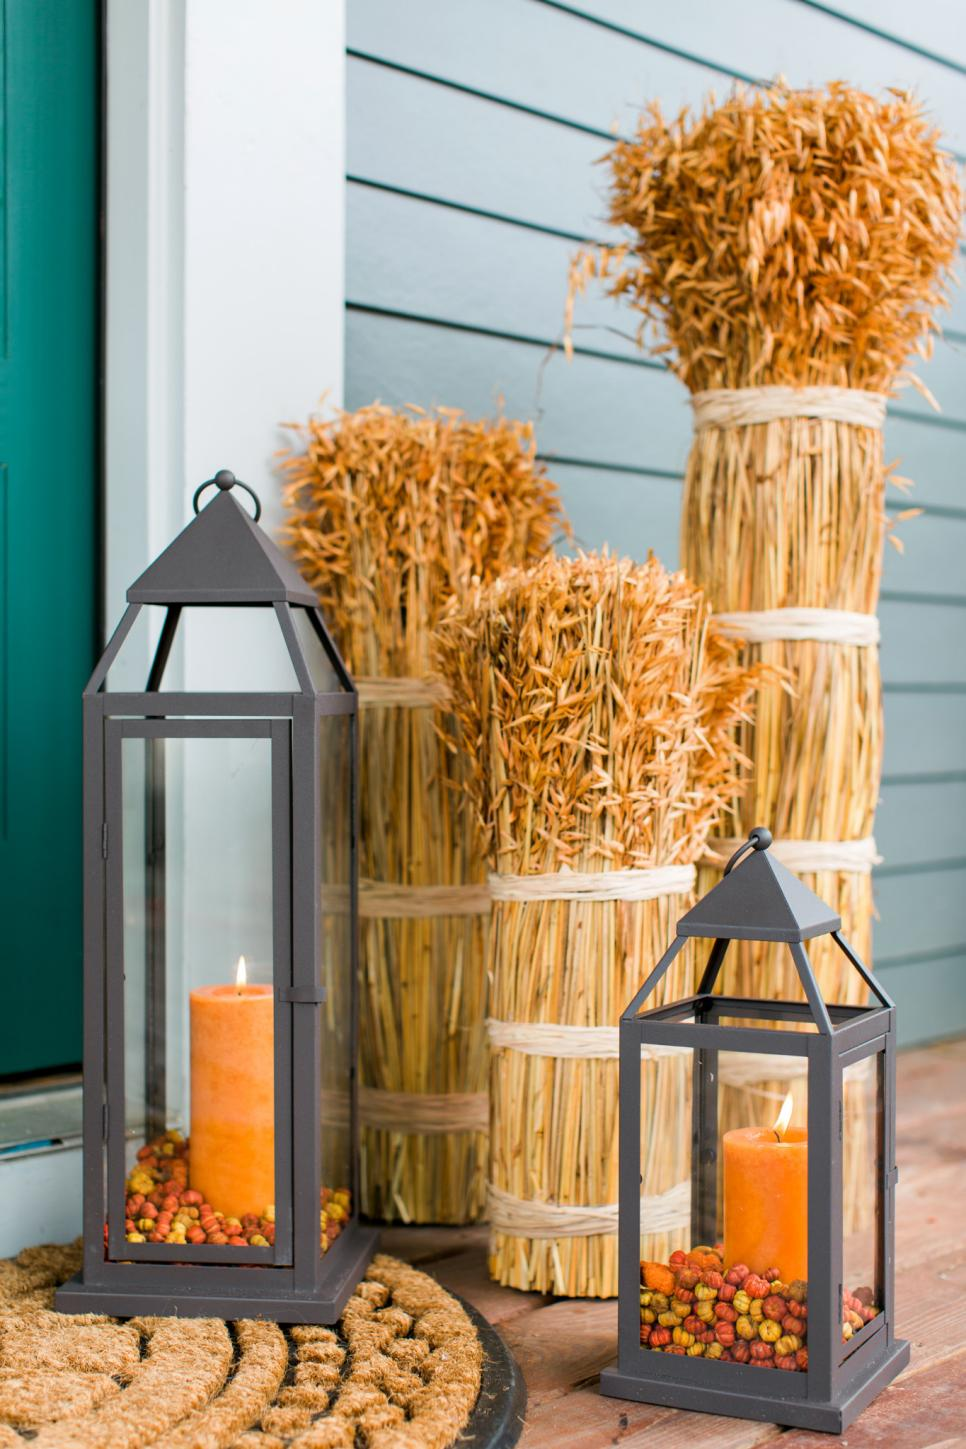 13 fall decorating ideas that last all season long one for Long porch decorating ideas